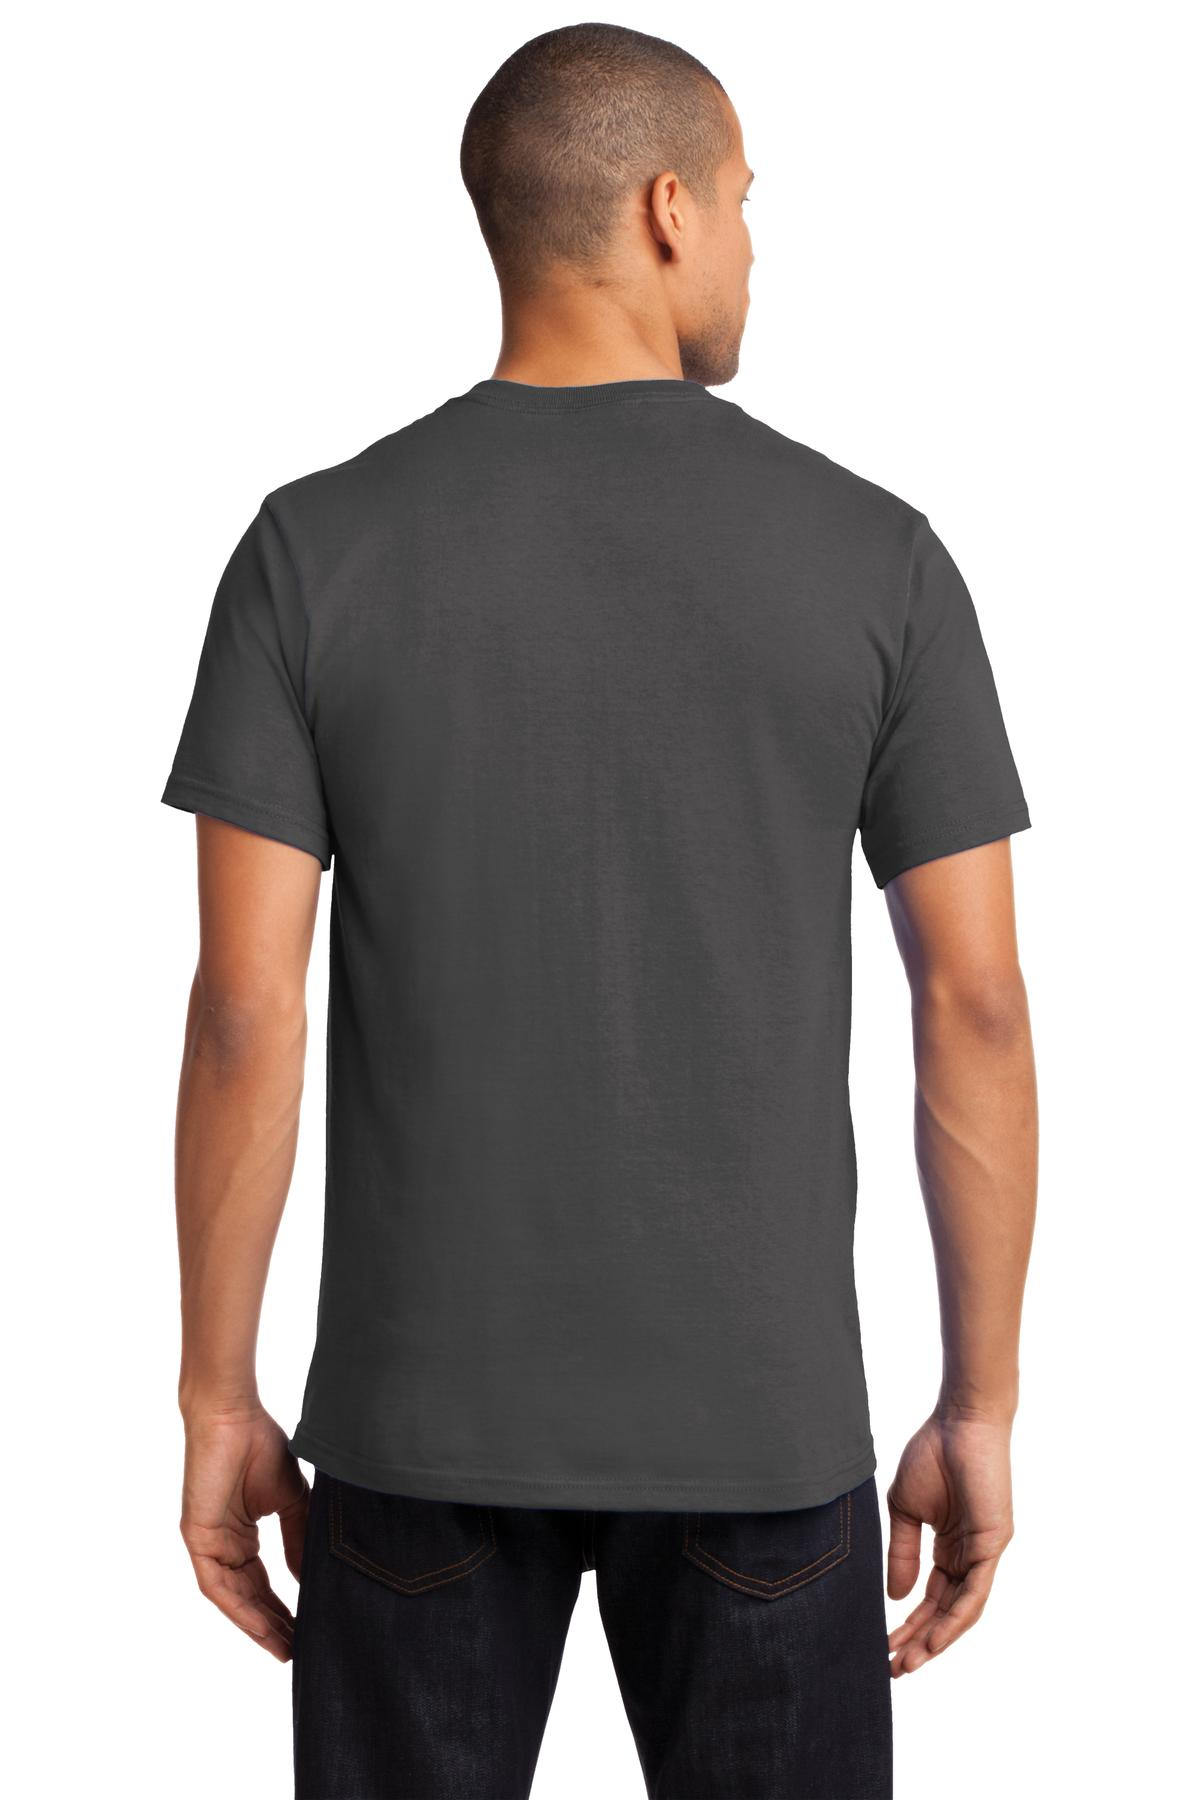 Port-amp-Company-Tall-Essential-TShirt-with-Pocket-PC61PT-Size-LT-4XLT thumbnail 12